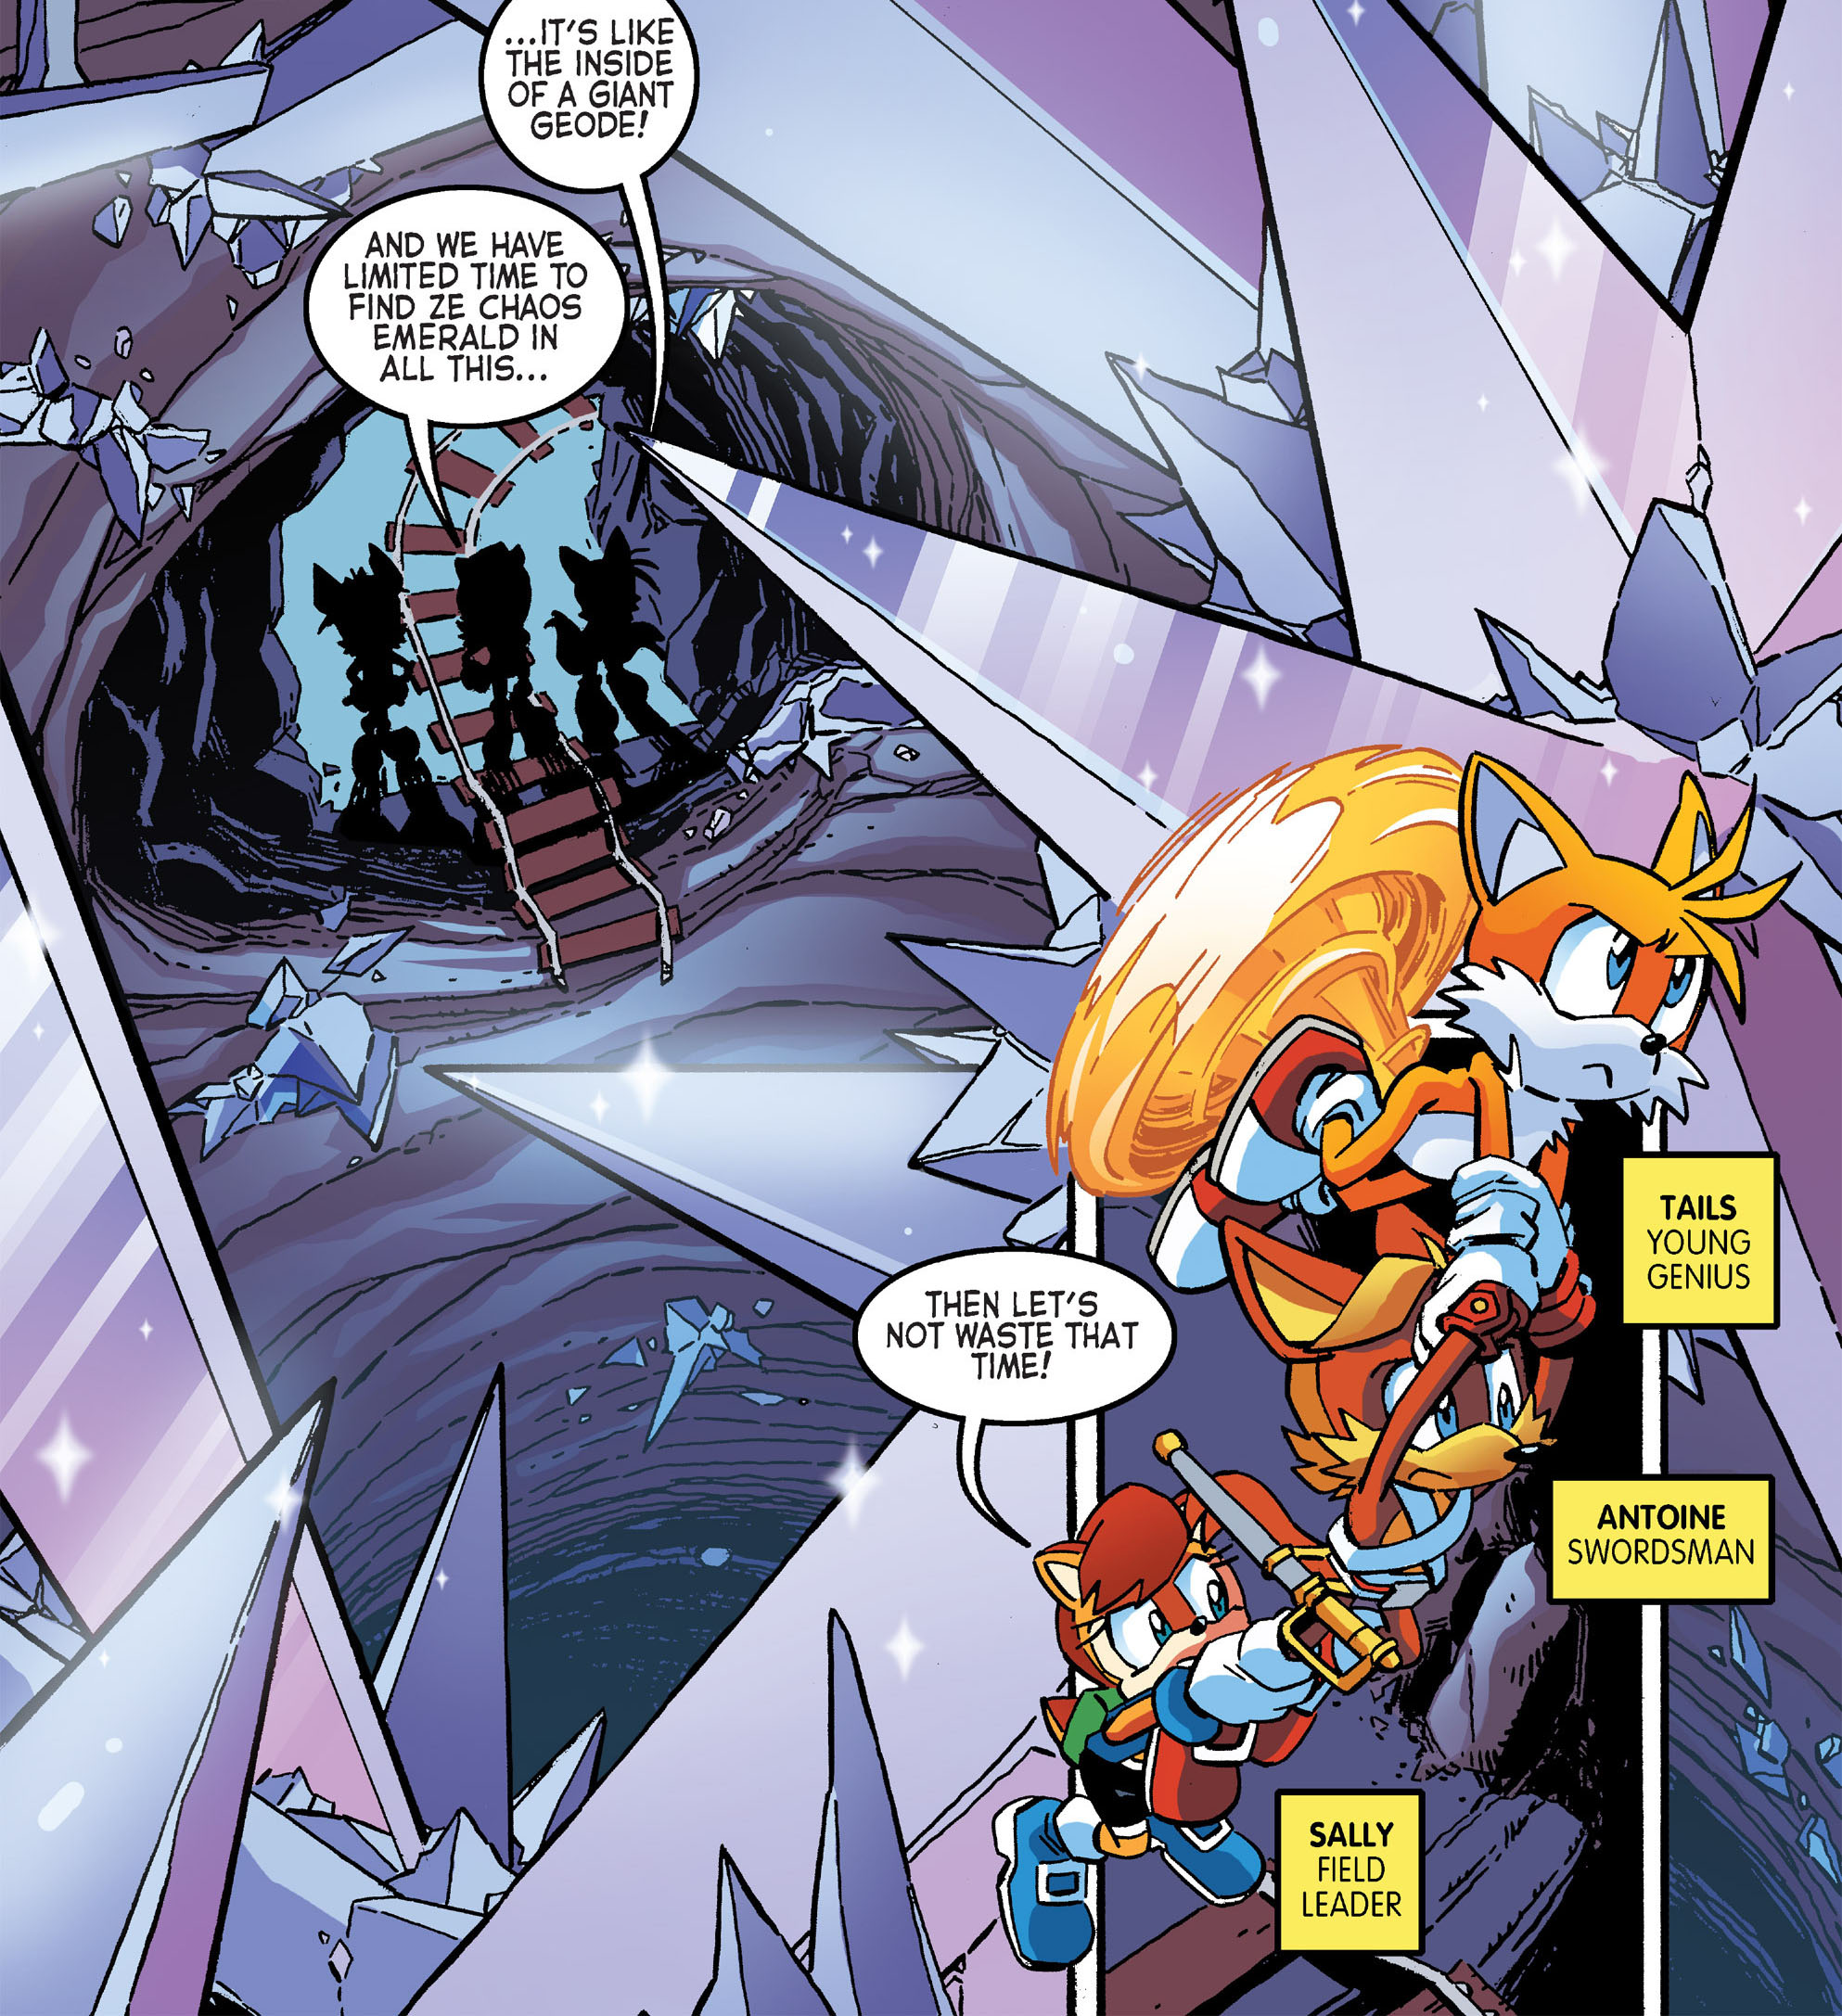 Sally acorn mobius encyclopaedia fandom powered by wikia 3242737 this site contains information about sally acorn mobius encyclopaedia fandom powered by wikia altavistaventures Images